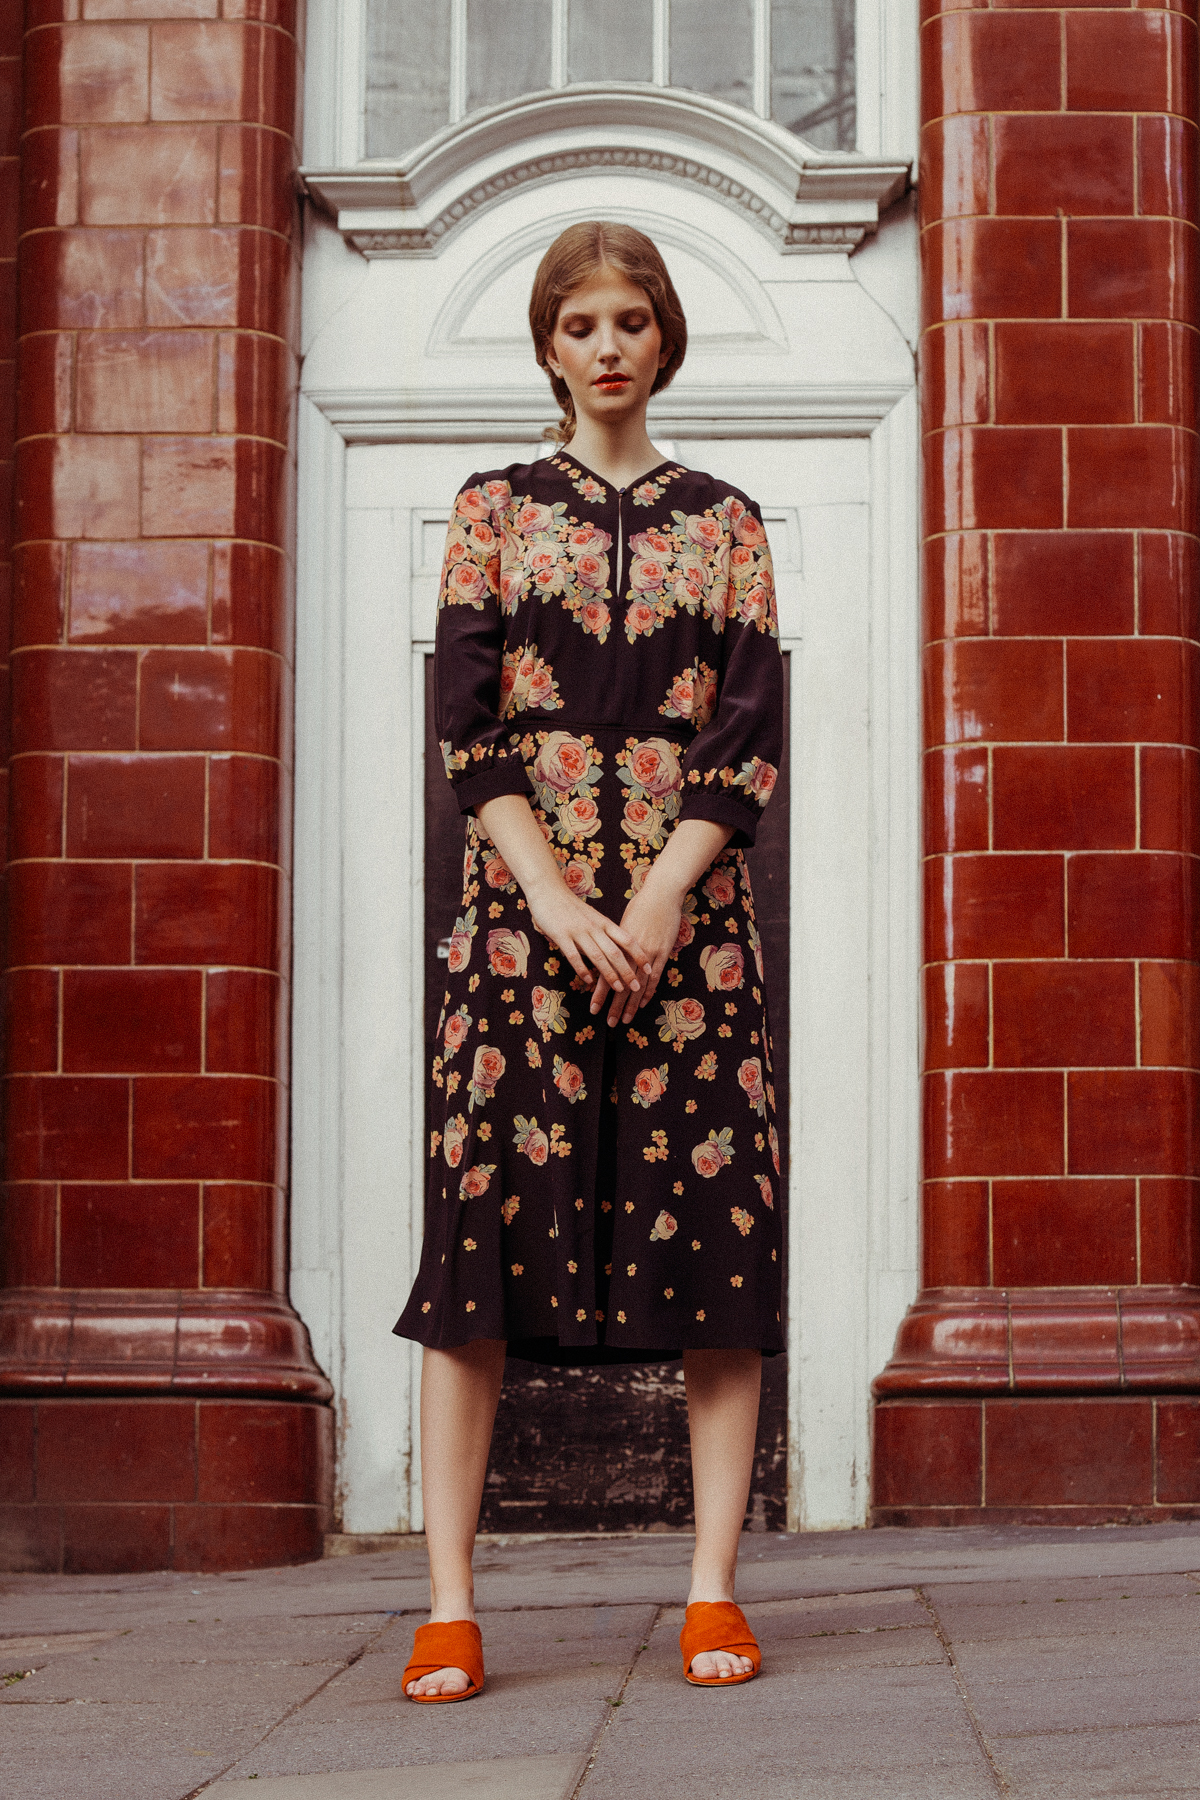 Kat_Terek_London_Bohemian_Editorial_Fashion_Photographer_Lindenstaub_Bronze-10